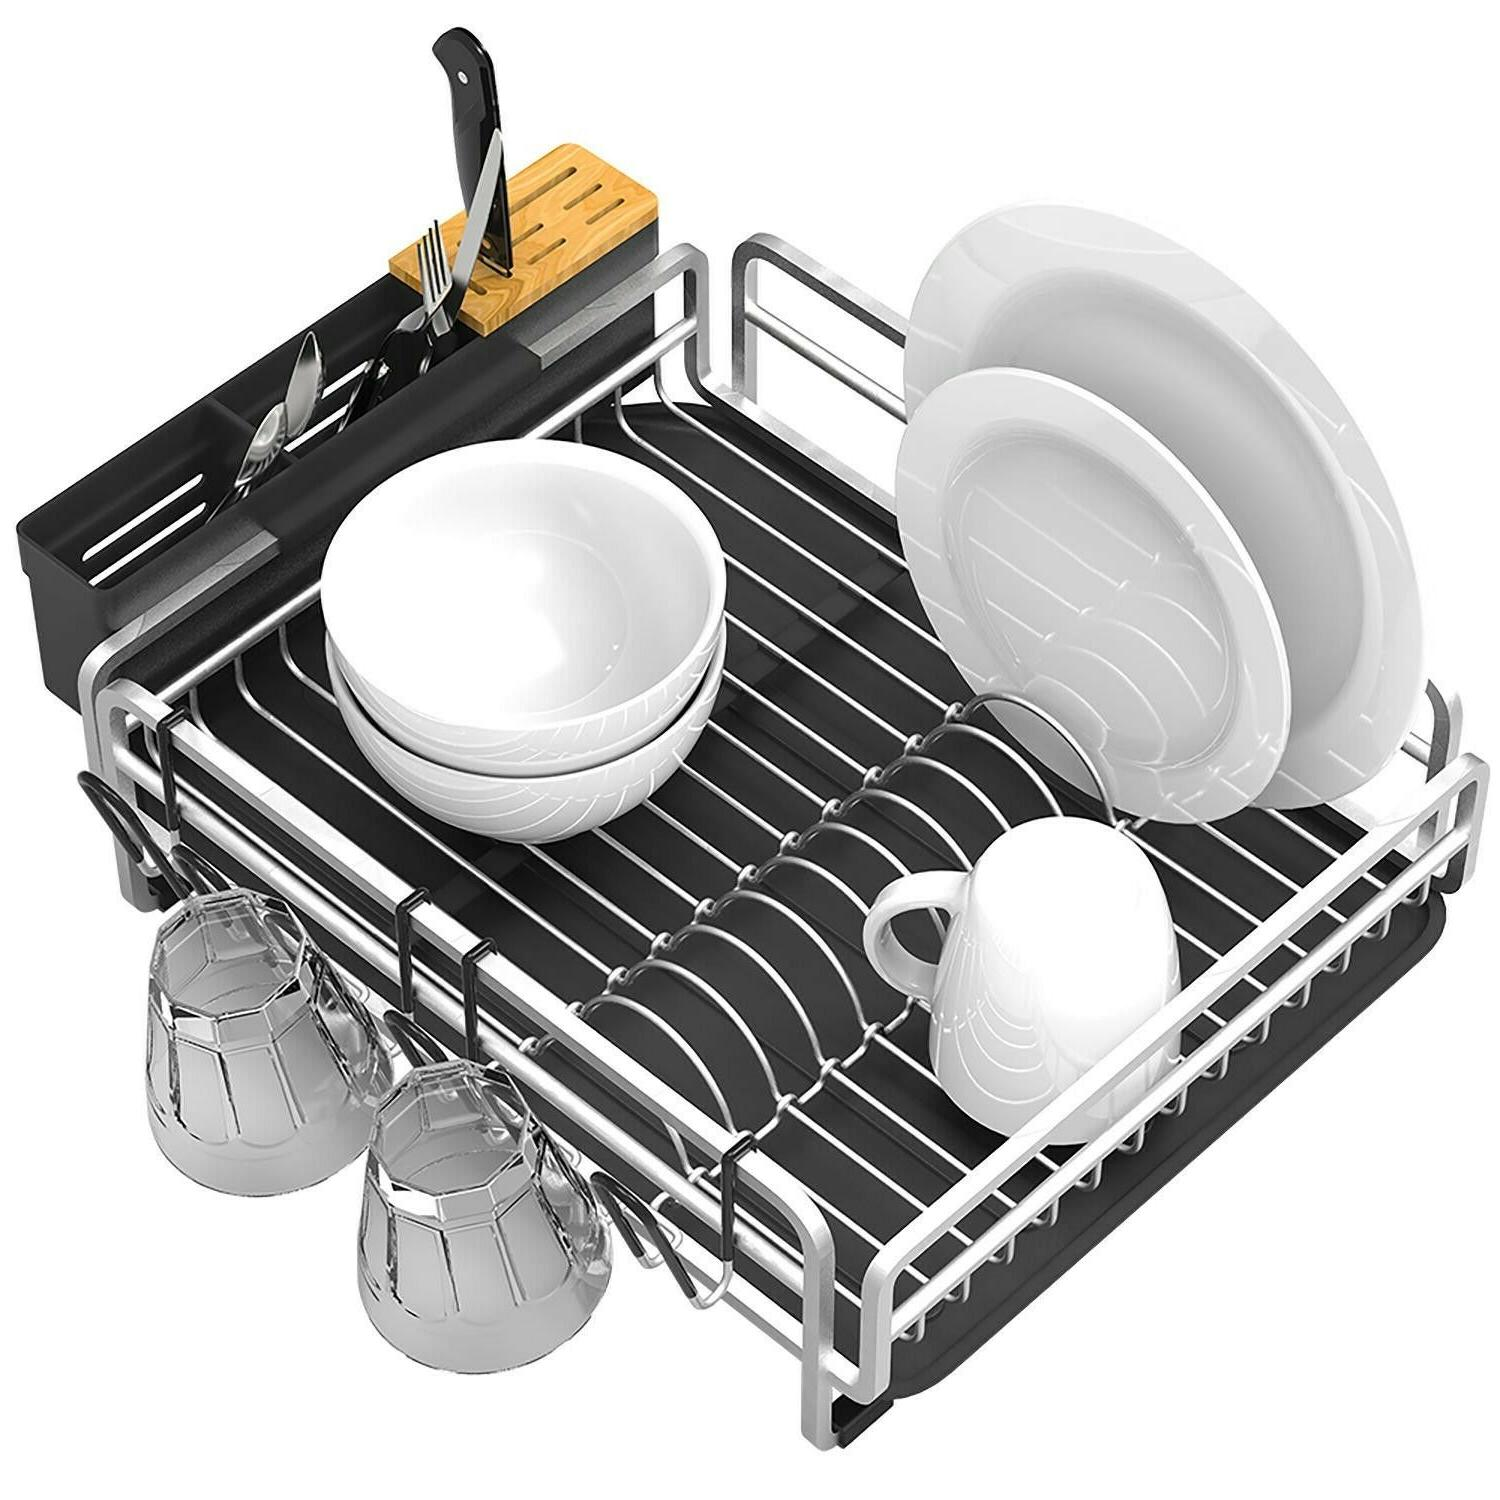 Aluminum Proof Drying w/ Drainboard for Countertop